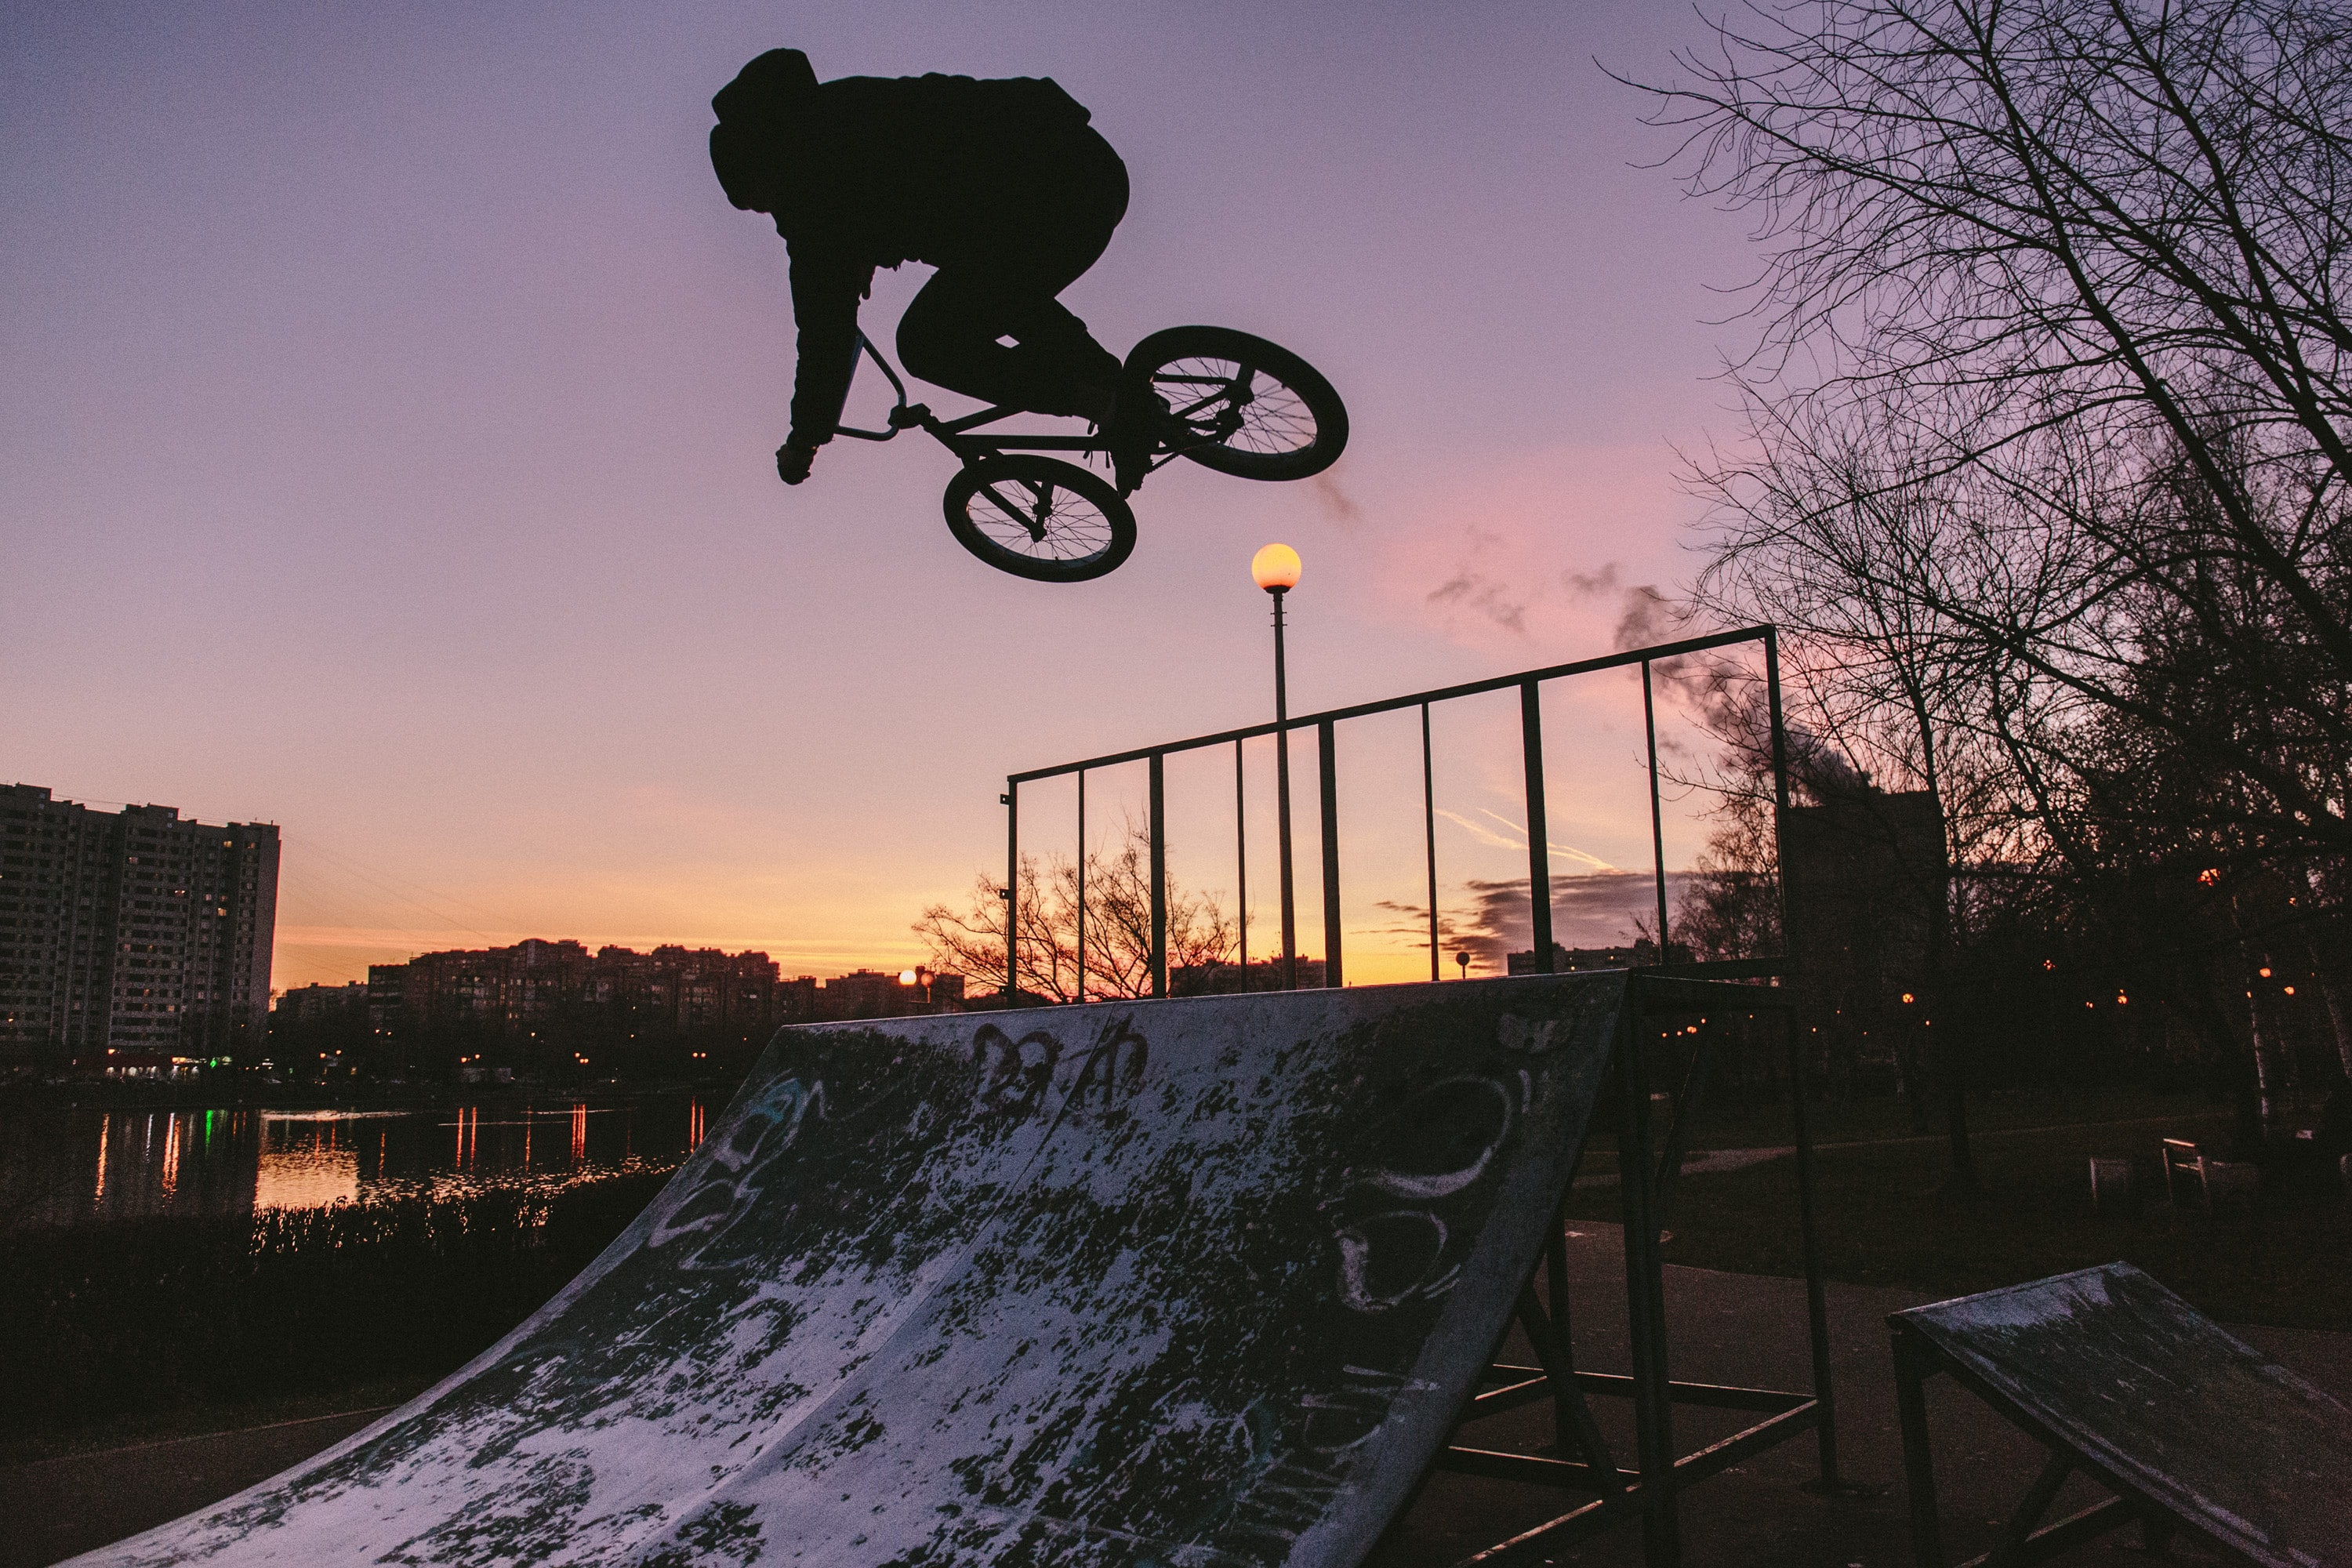 silhouette of person riding bike while doing tricks